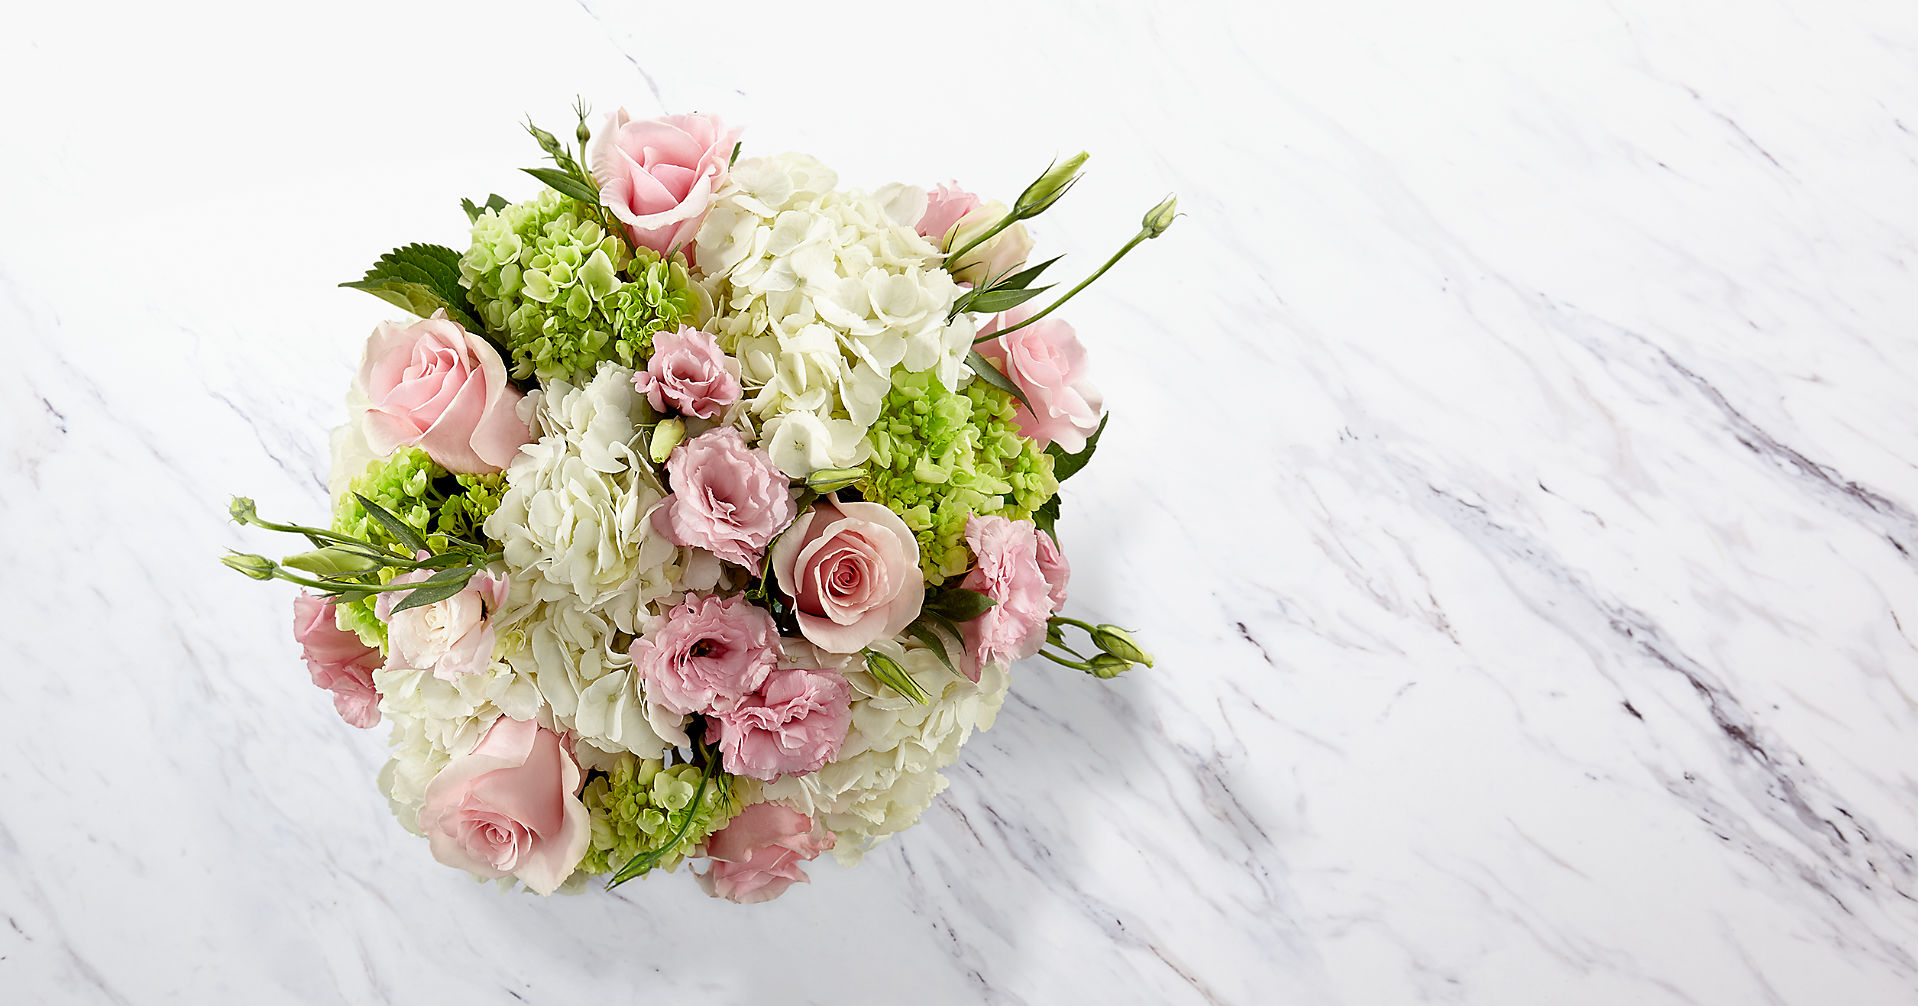 Always Smile™ Luxury Bouquet - VASE INCLUDED - Image 2 Of 3